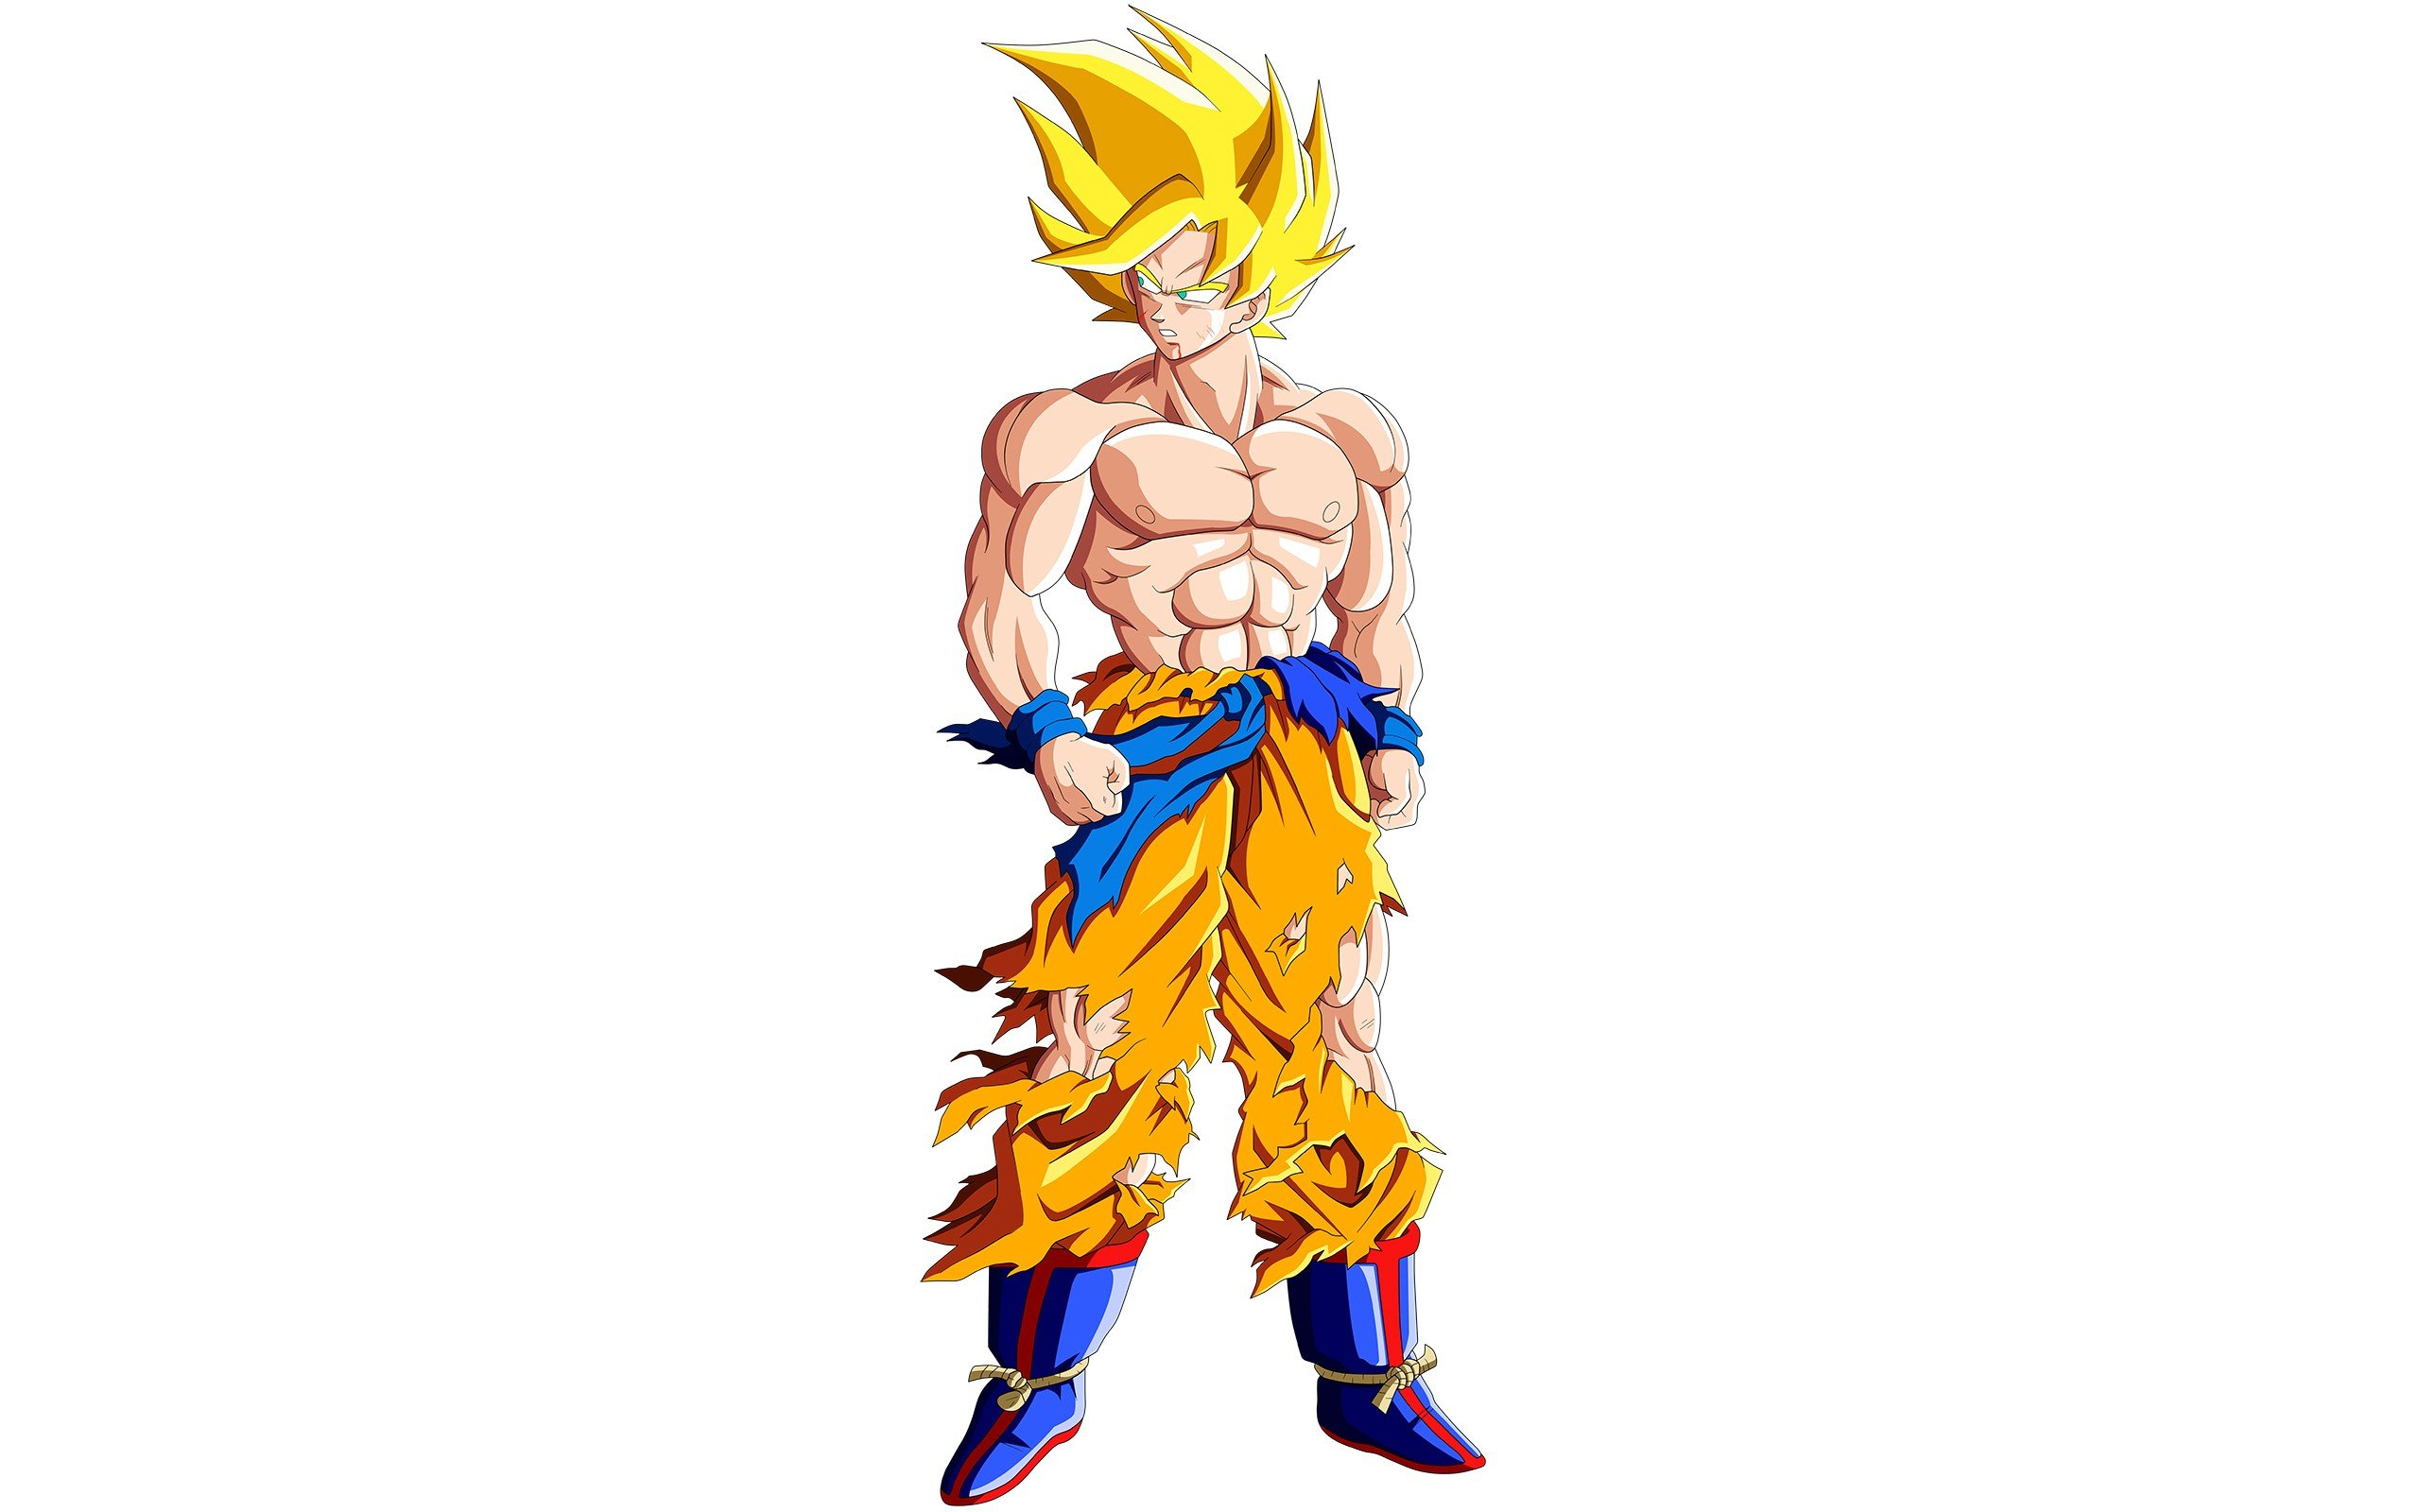 Anime dragon ball z dragon ball dragon ball gt wallpaper - Dragon ball super background music mp3 download ...